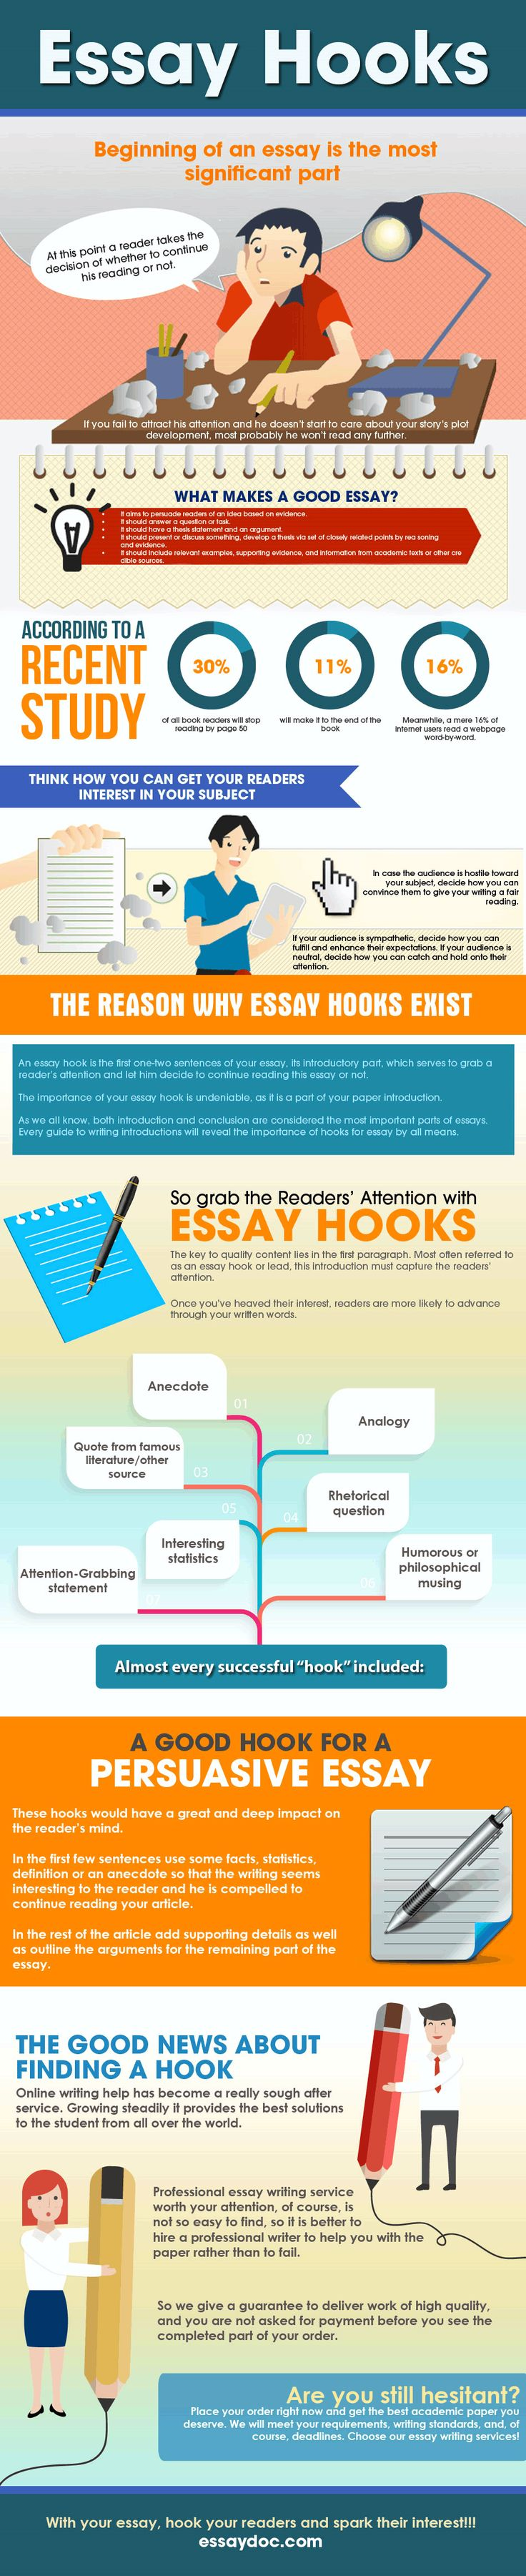 best ideas about essay writing help nikki cox essay hooks infographic